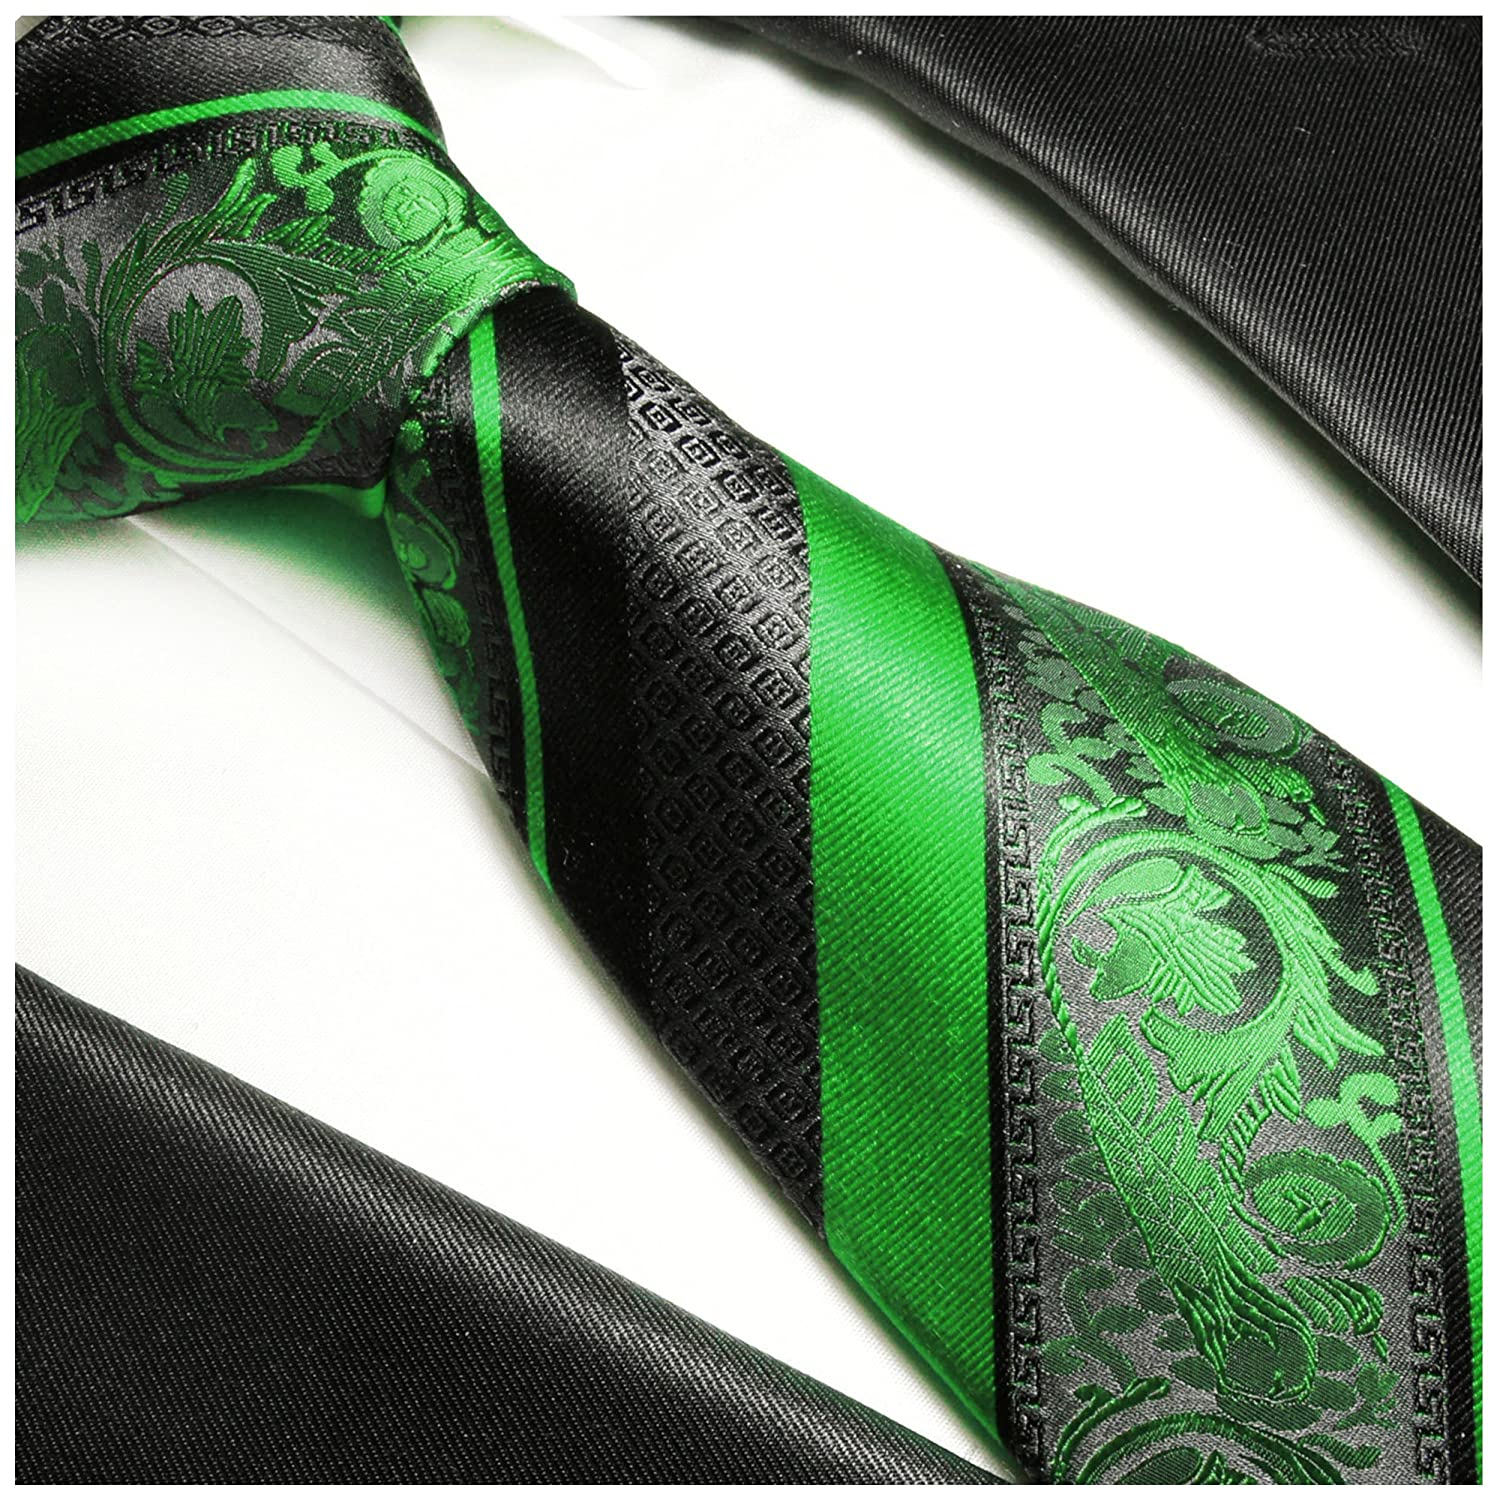 Green and Black Silk Tie with Pocket Square and Cufflinks